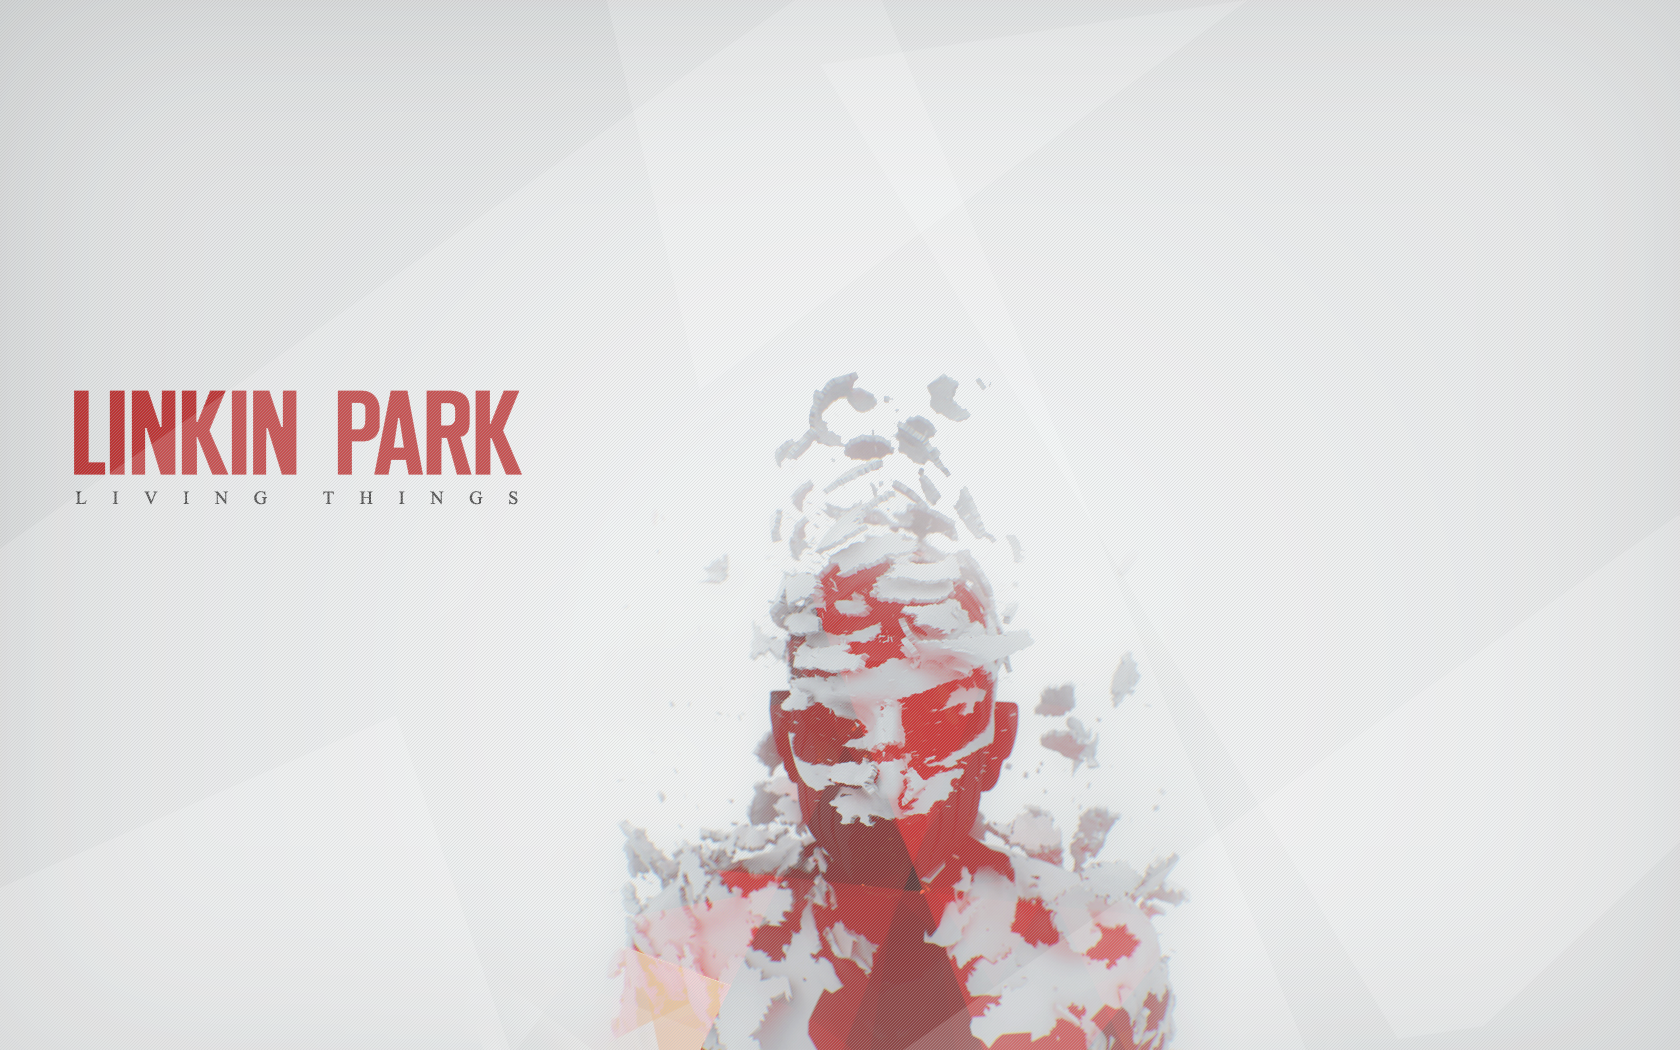 Lp Living Things By Xxrapekxx On Deviantart